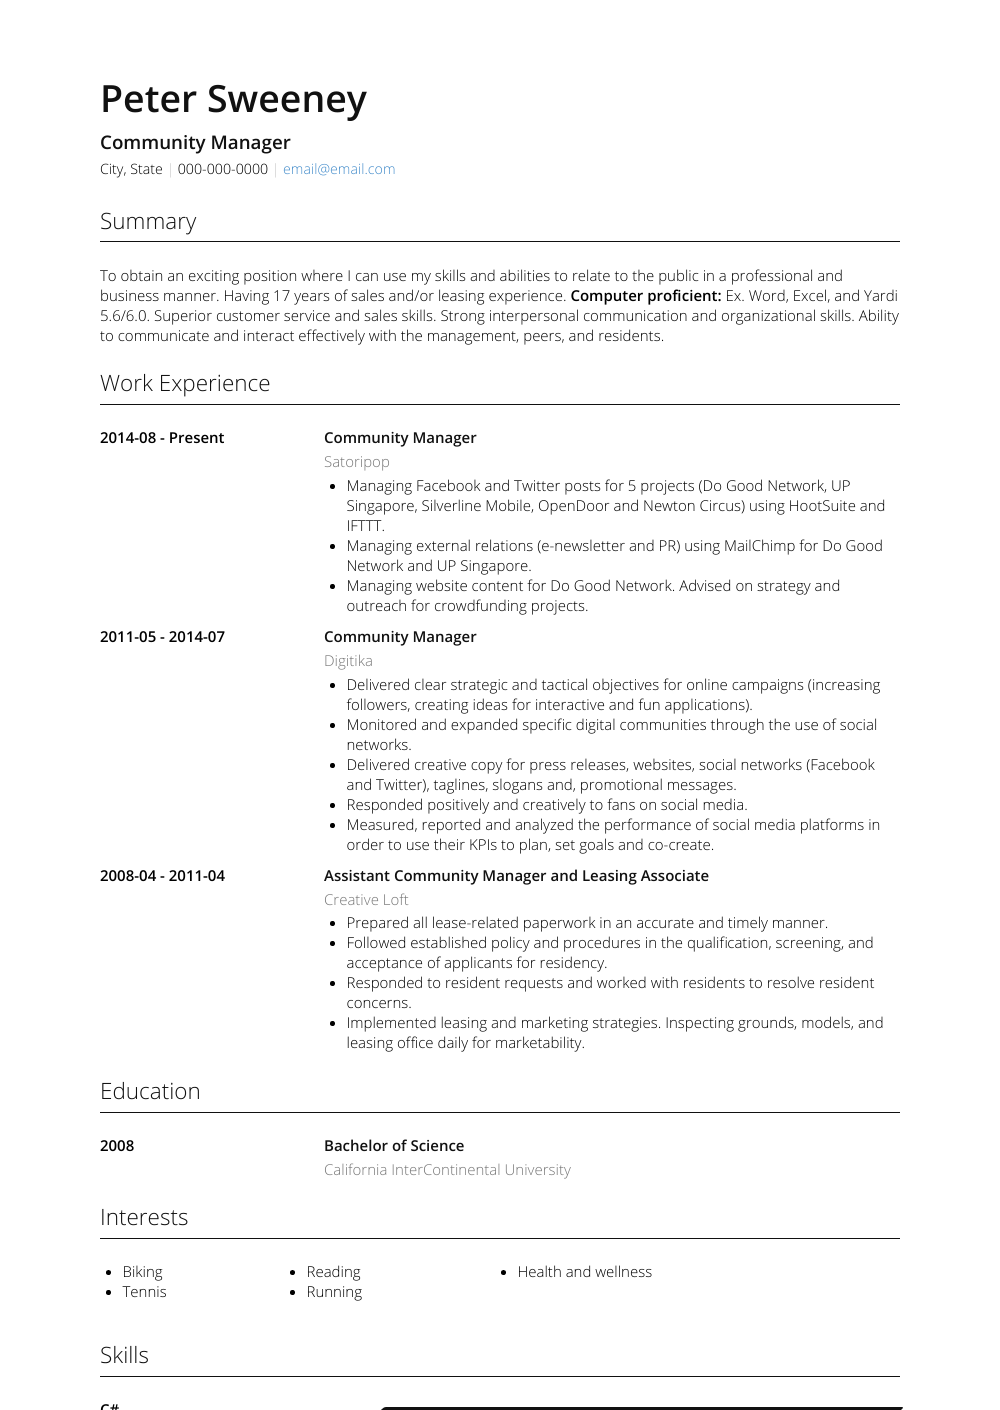 Community Manager Resume Sample and Template